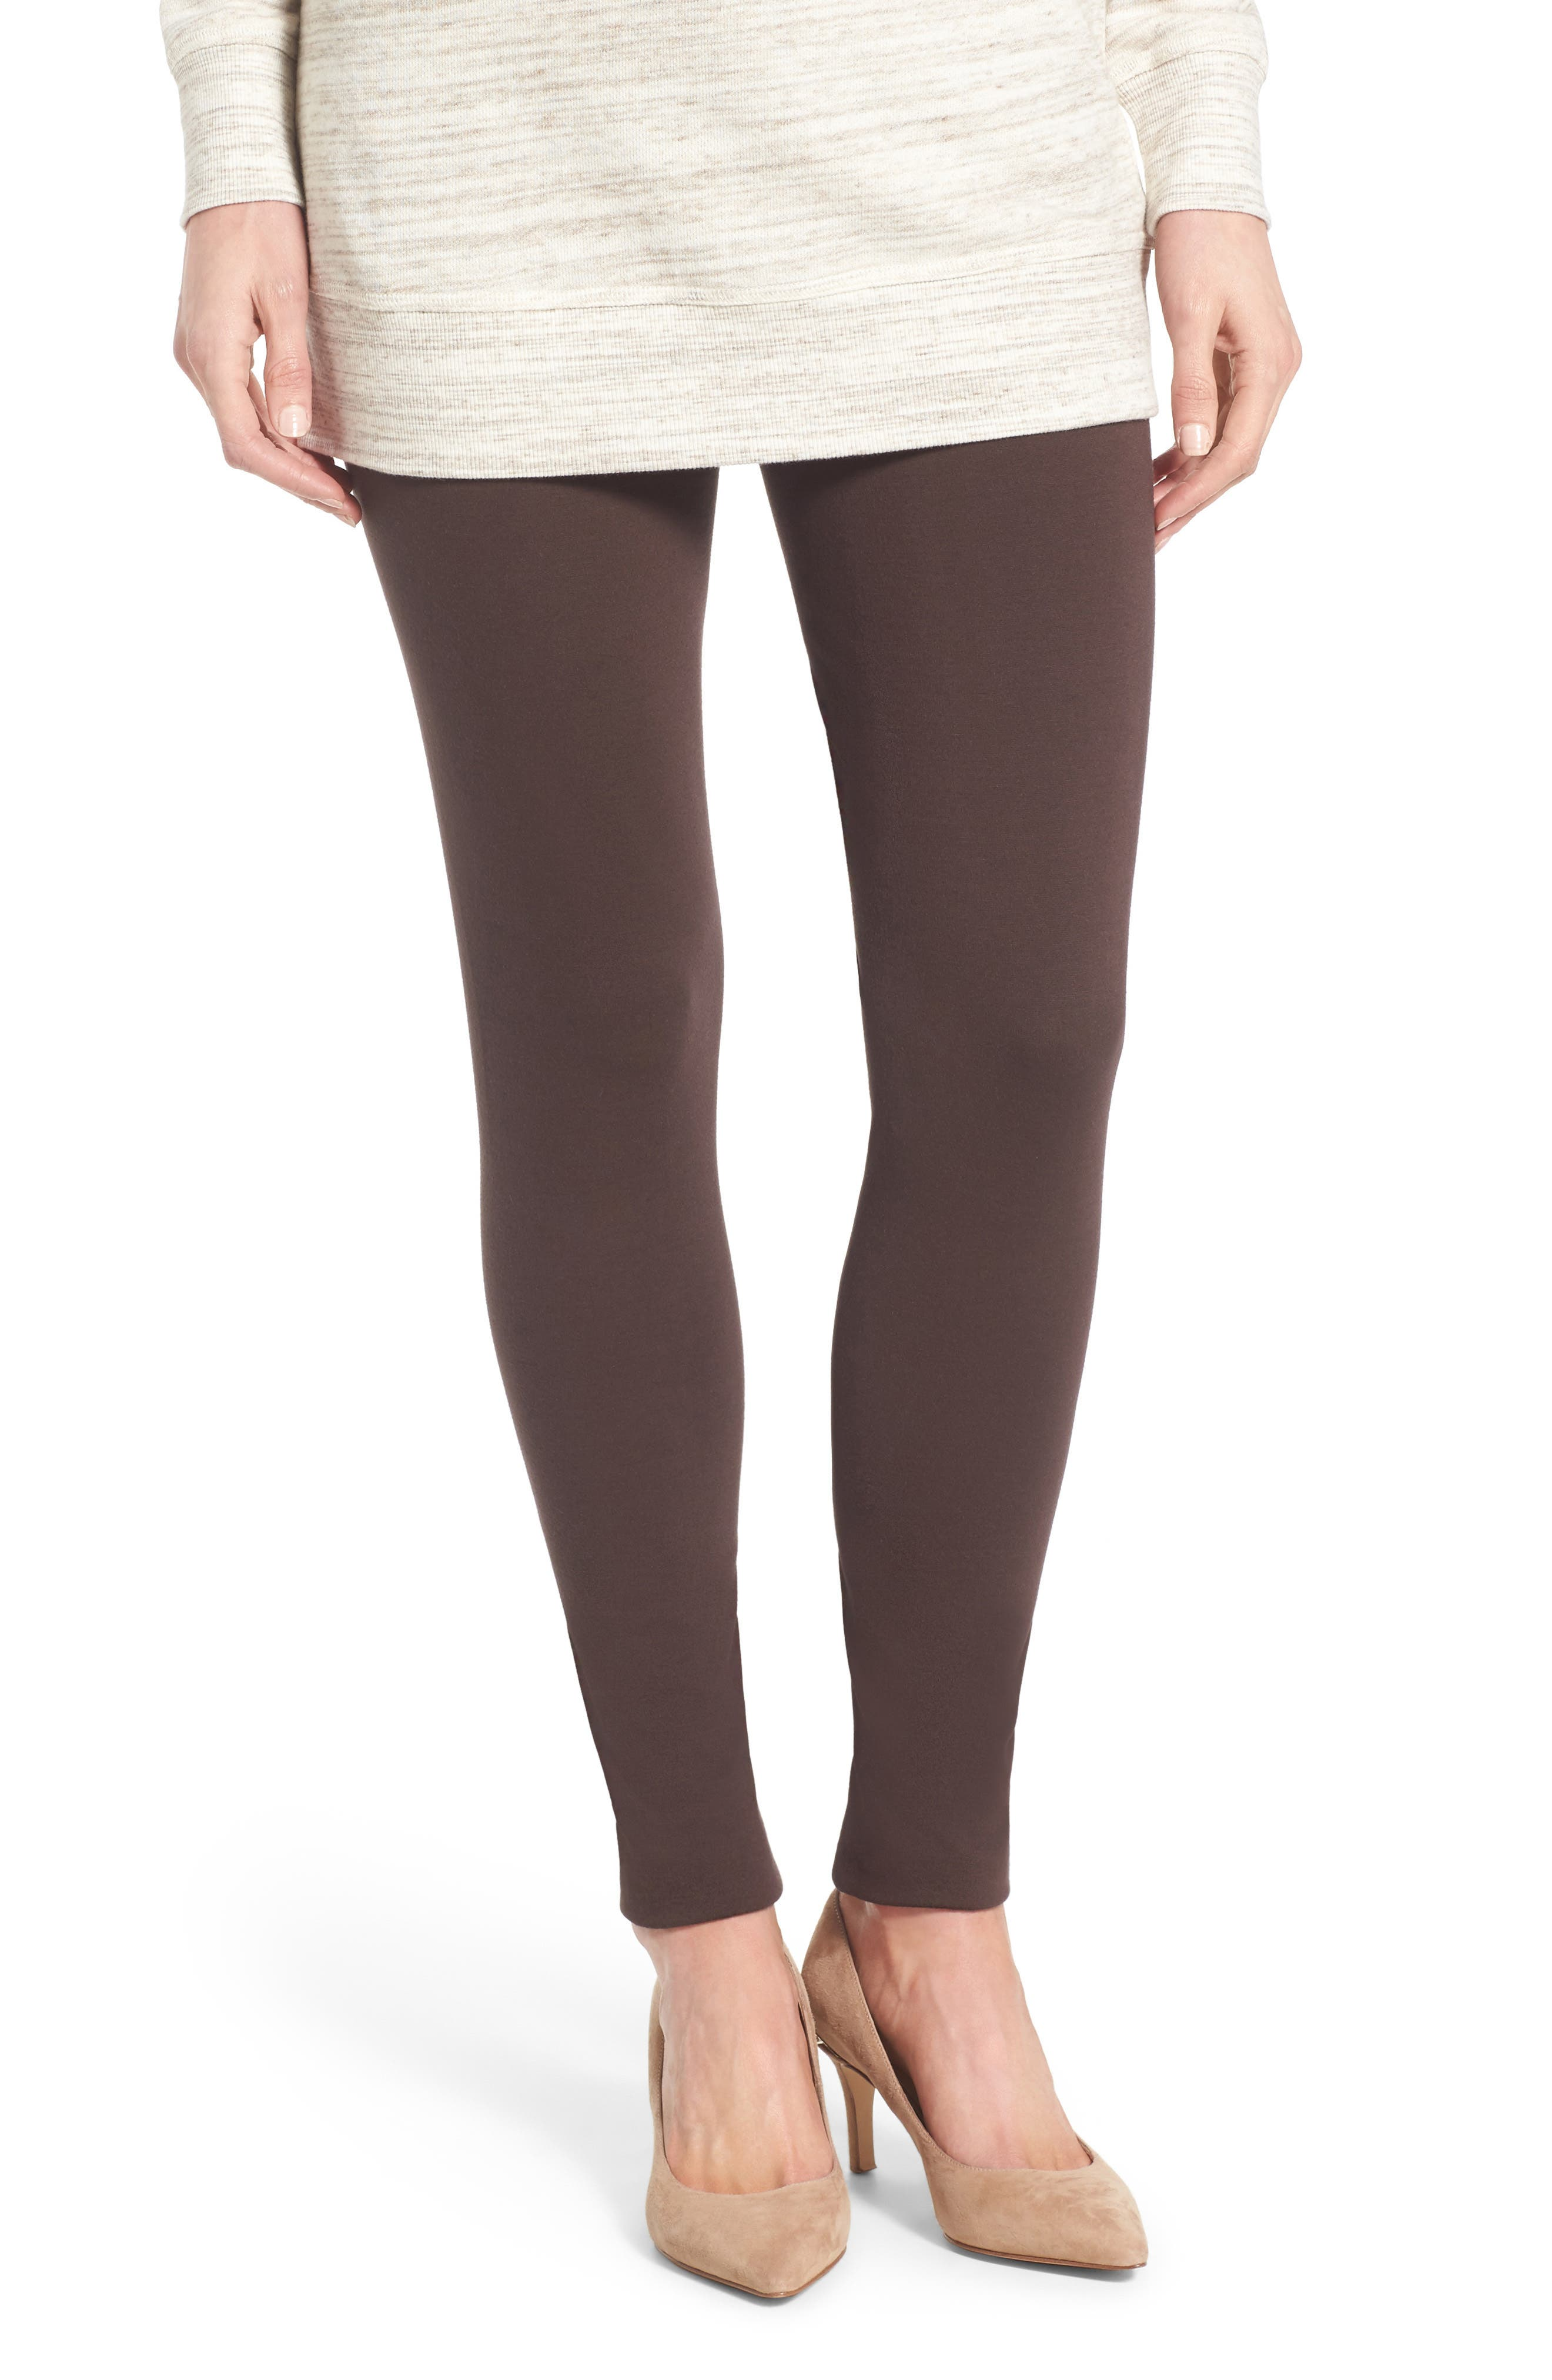 TWO BY VINCE CAMUTO Seamed Back Leggings in Espresso